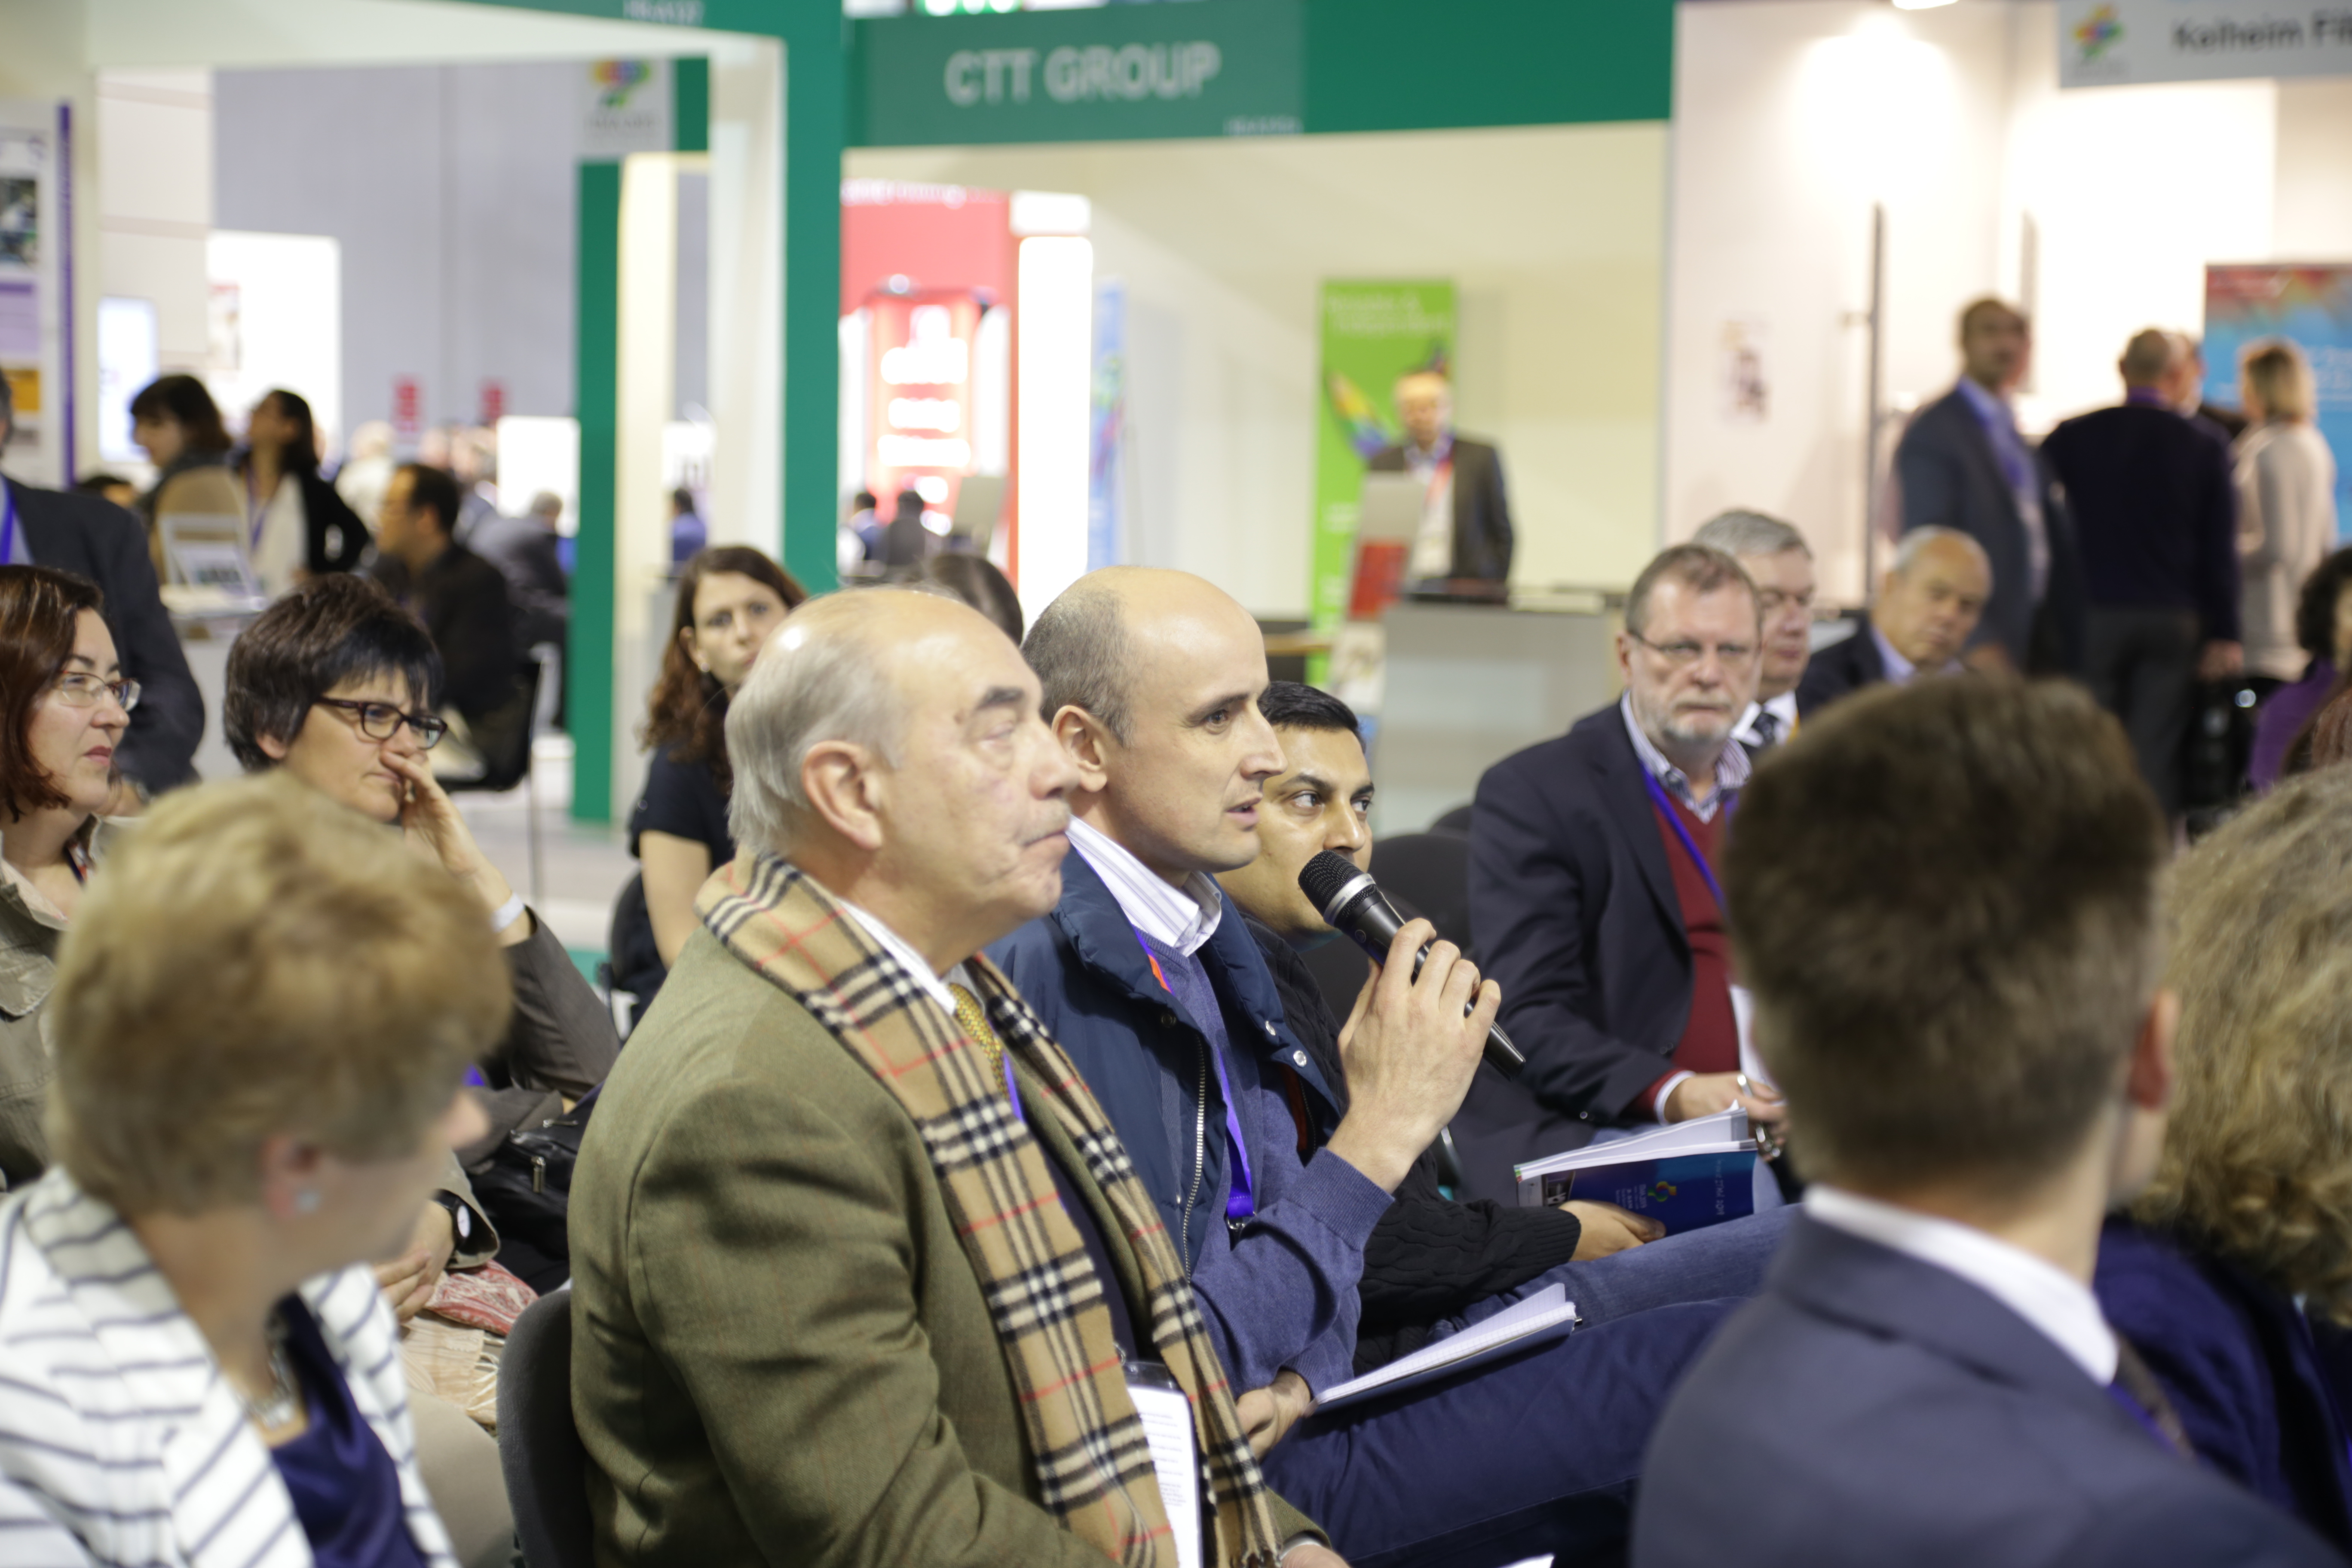 ITMA Speakers Platform Feature Presentations By Invited Industry Experts